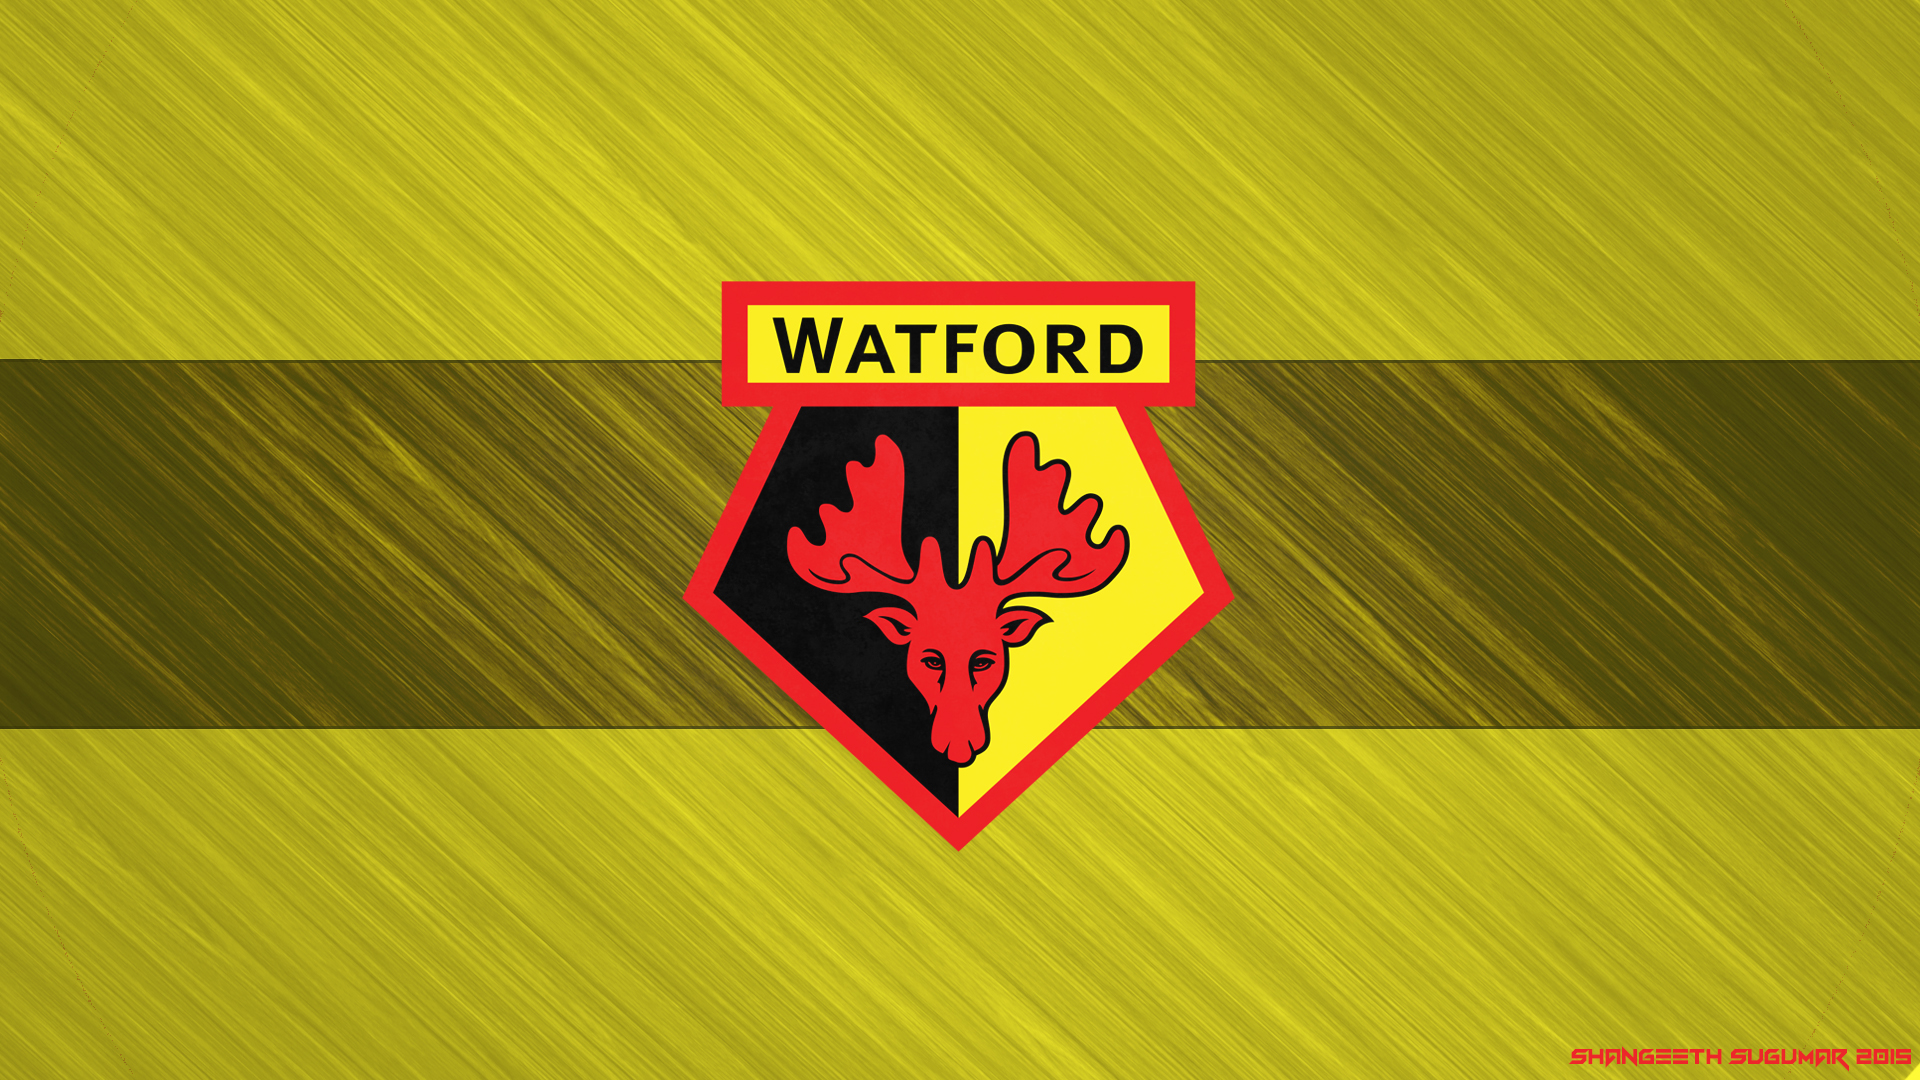 Watford wallpaper full hd pictures - Wallpaper pictures ...